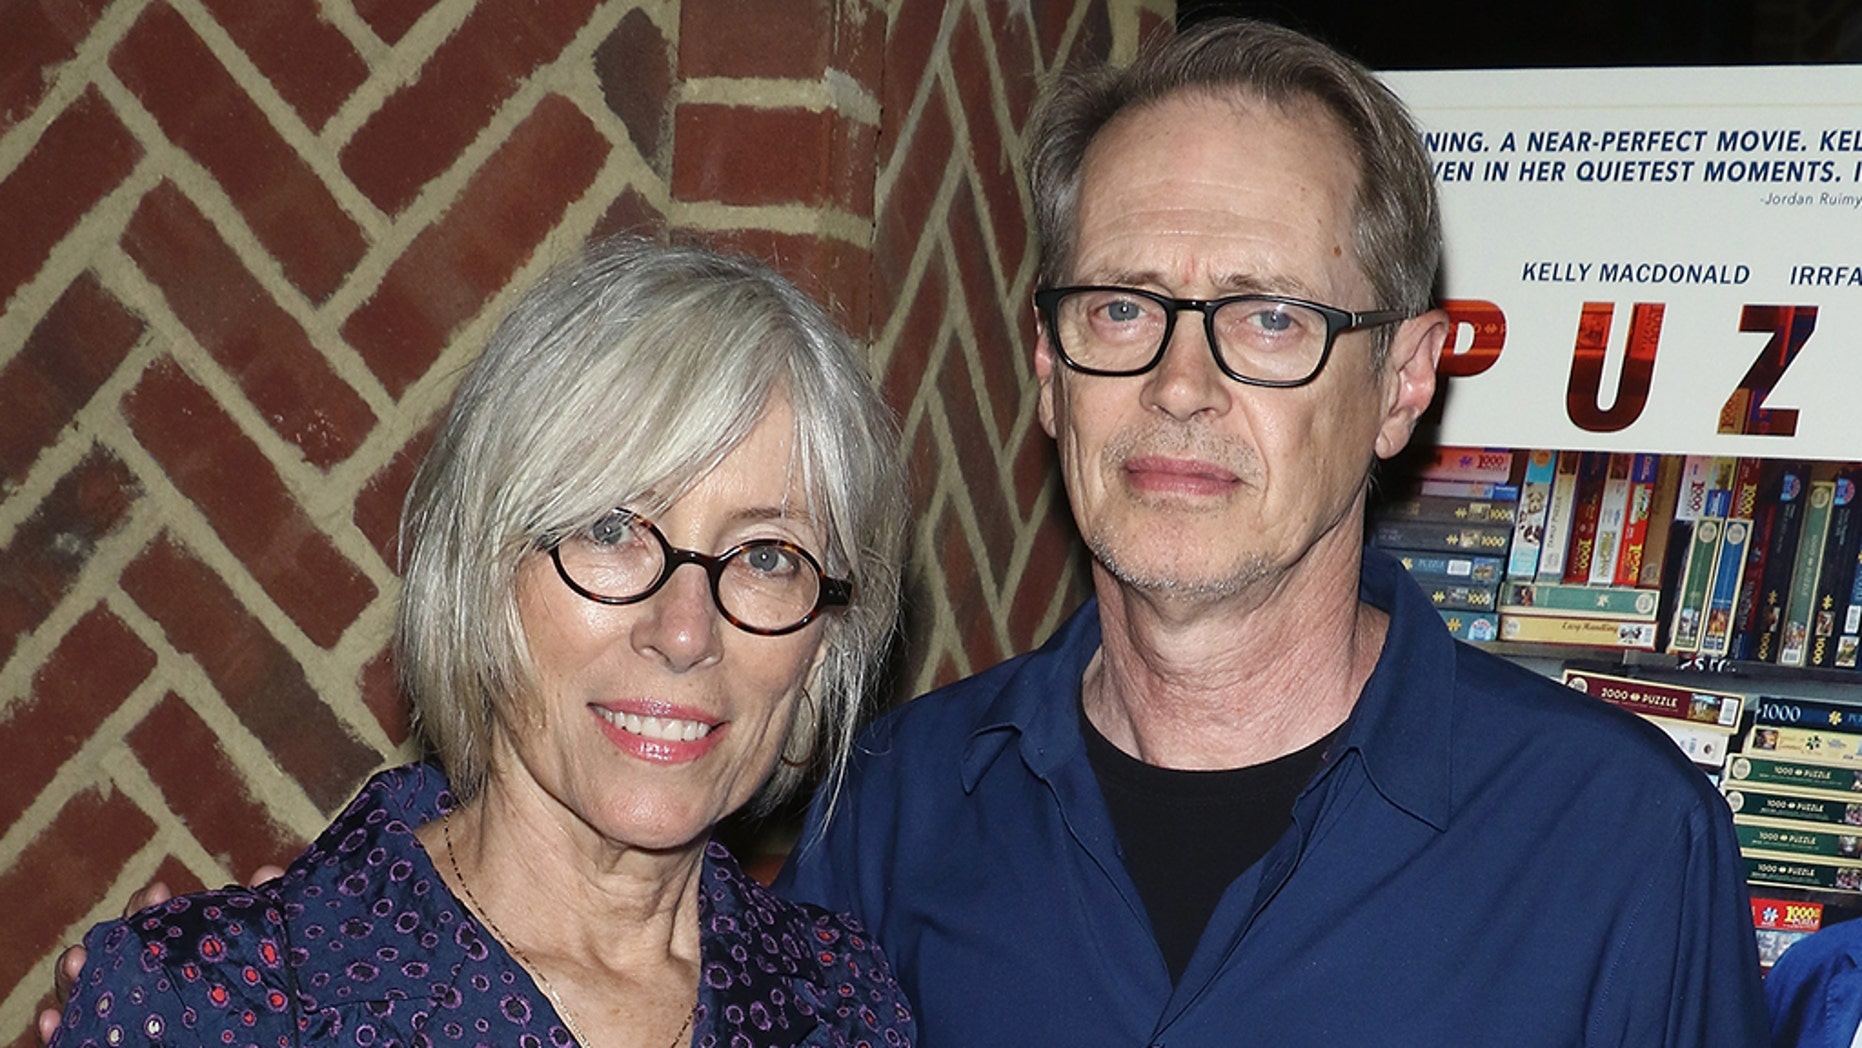 Emmy Award-winning actor Steve Buscemi's wife Jo Andres has died. She was 65.